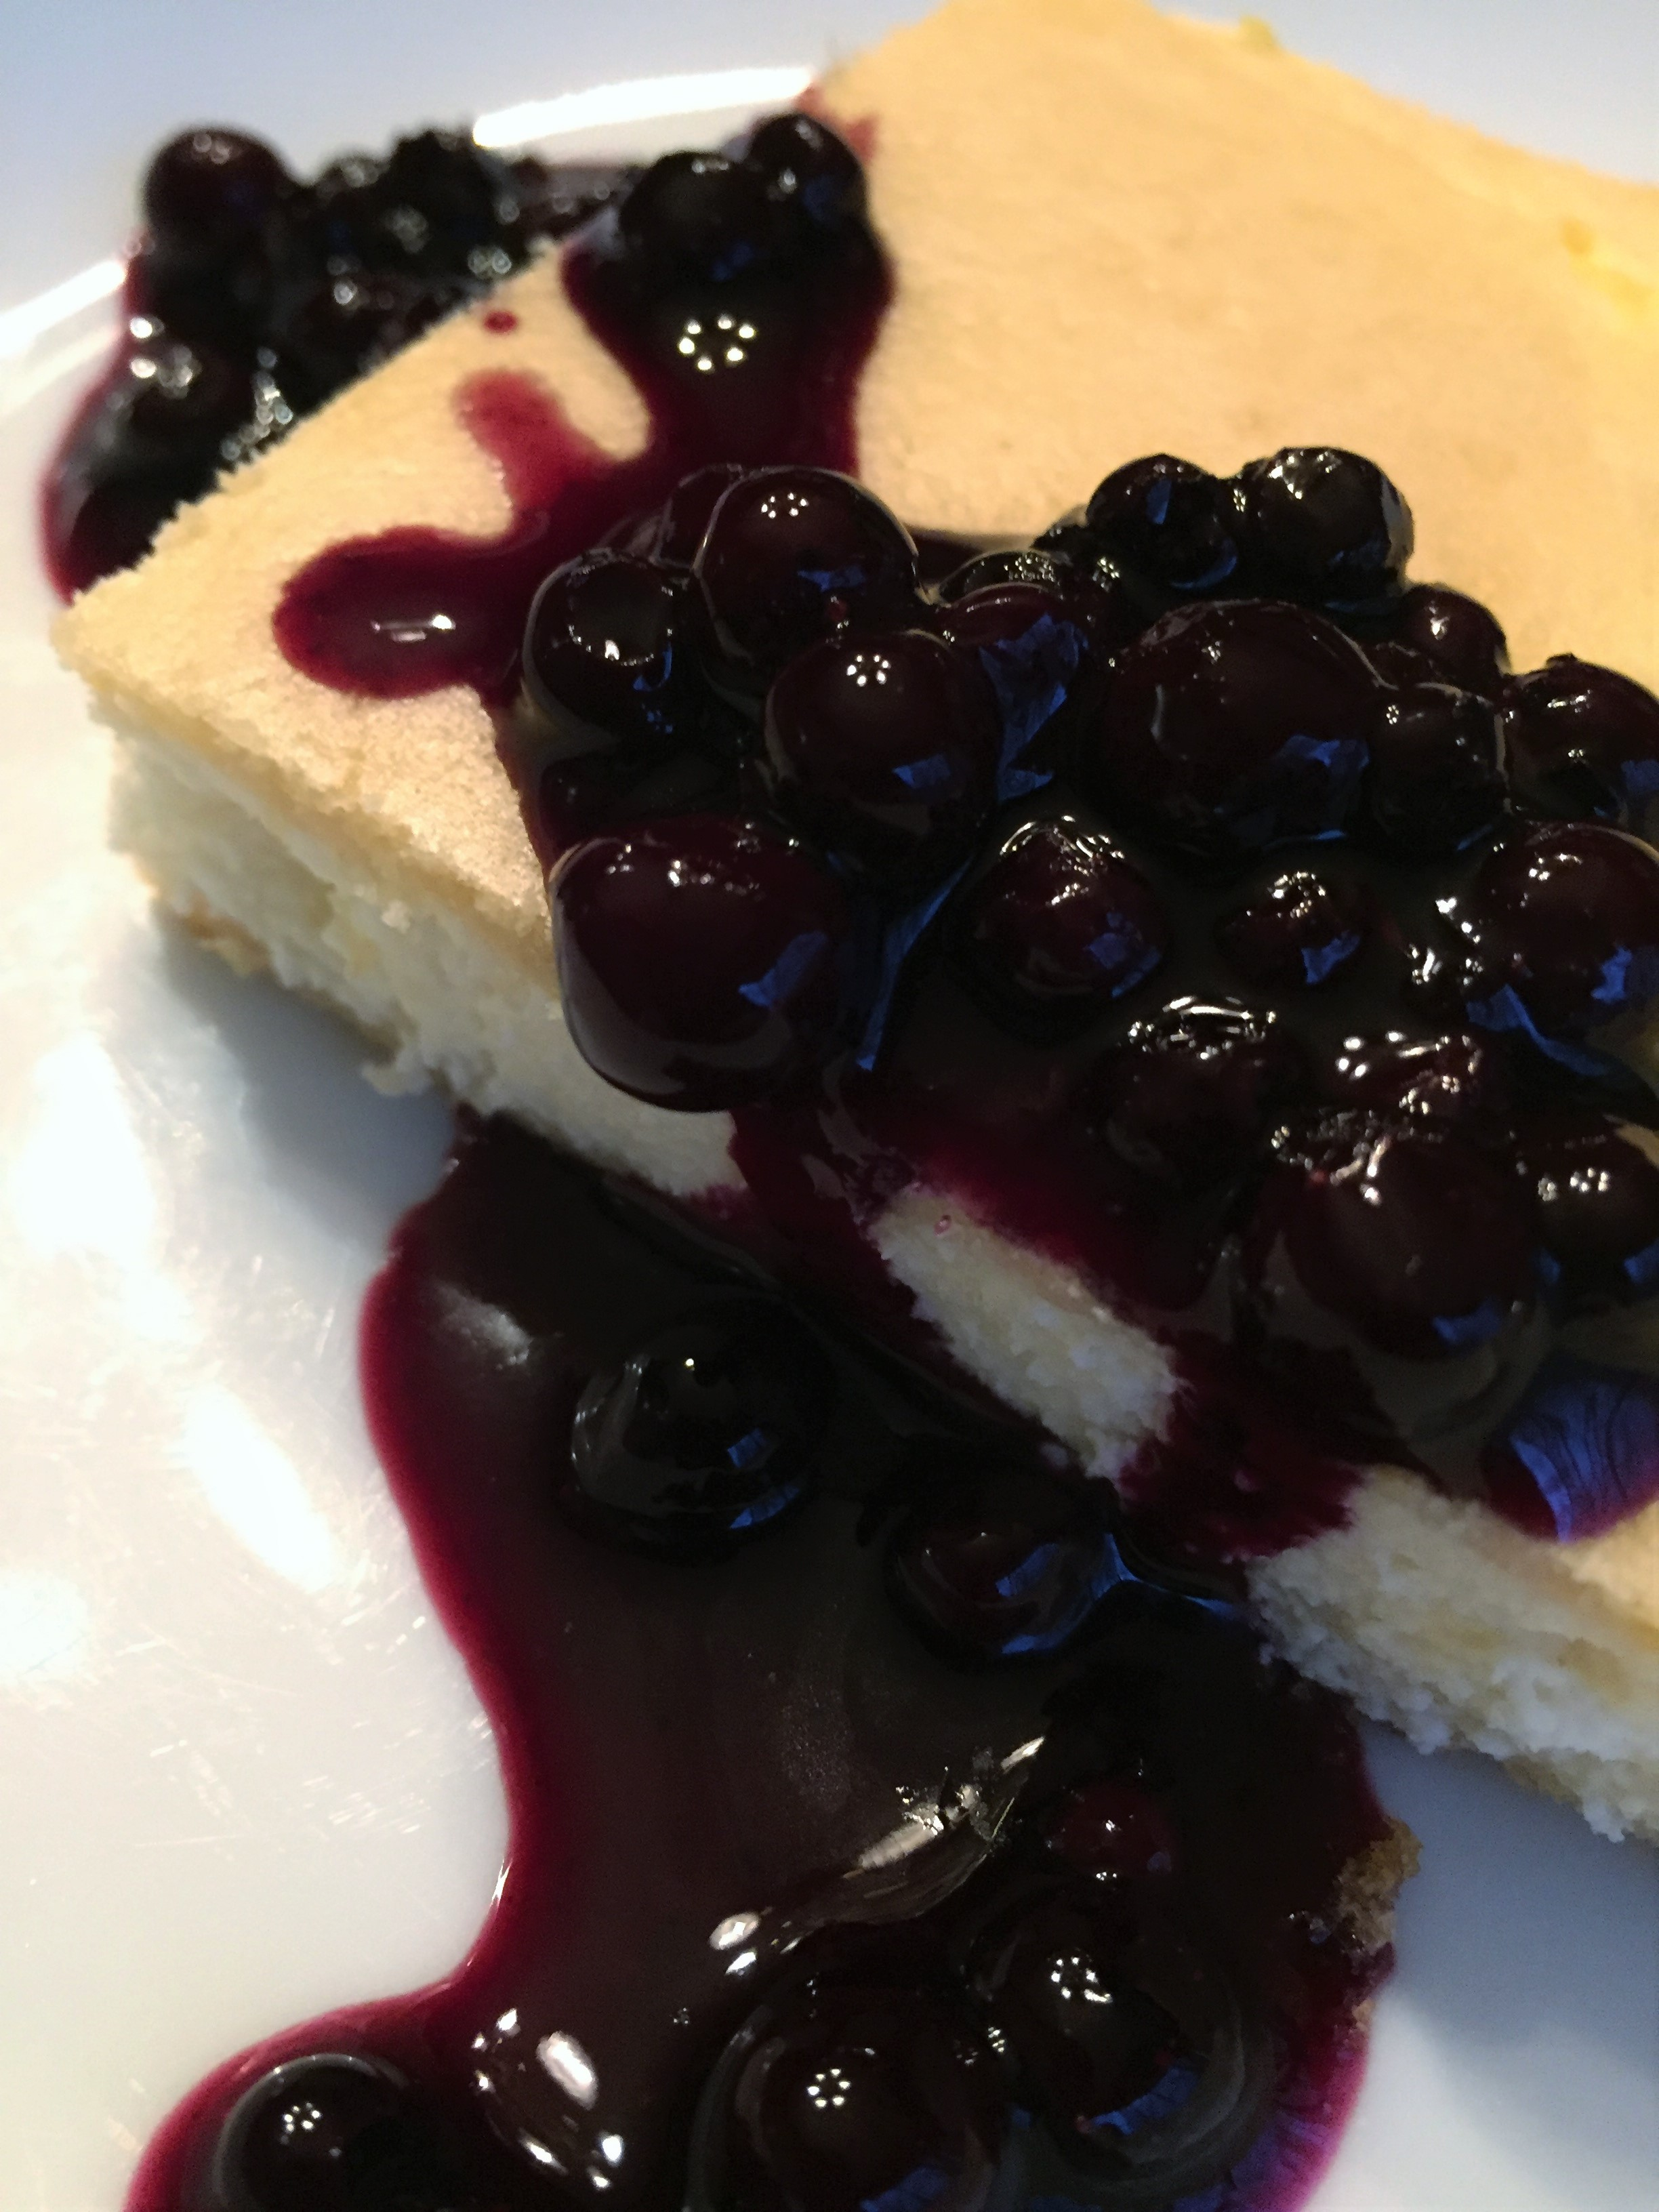 blintz-cheesecake3-kitchenblissca.jpg